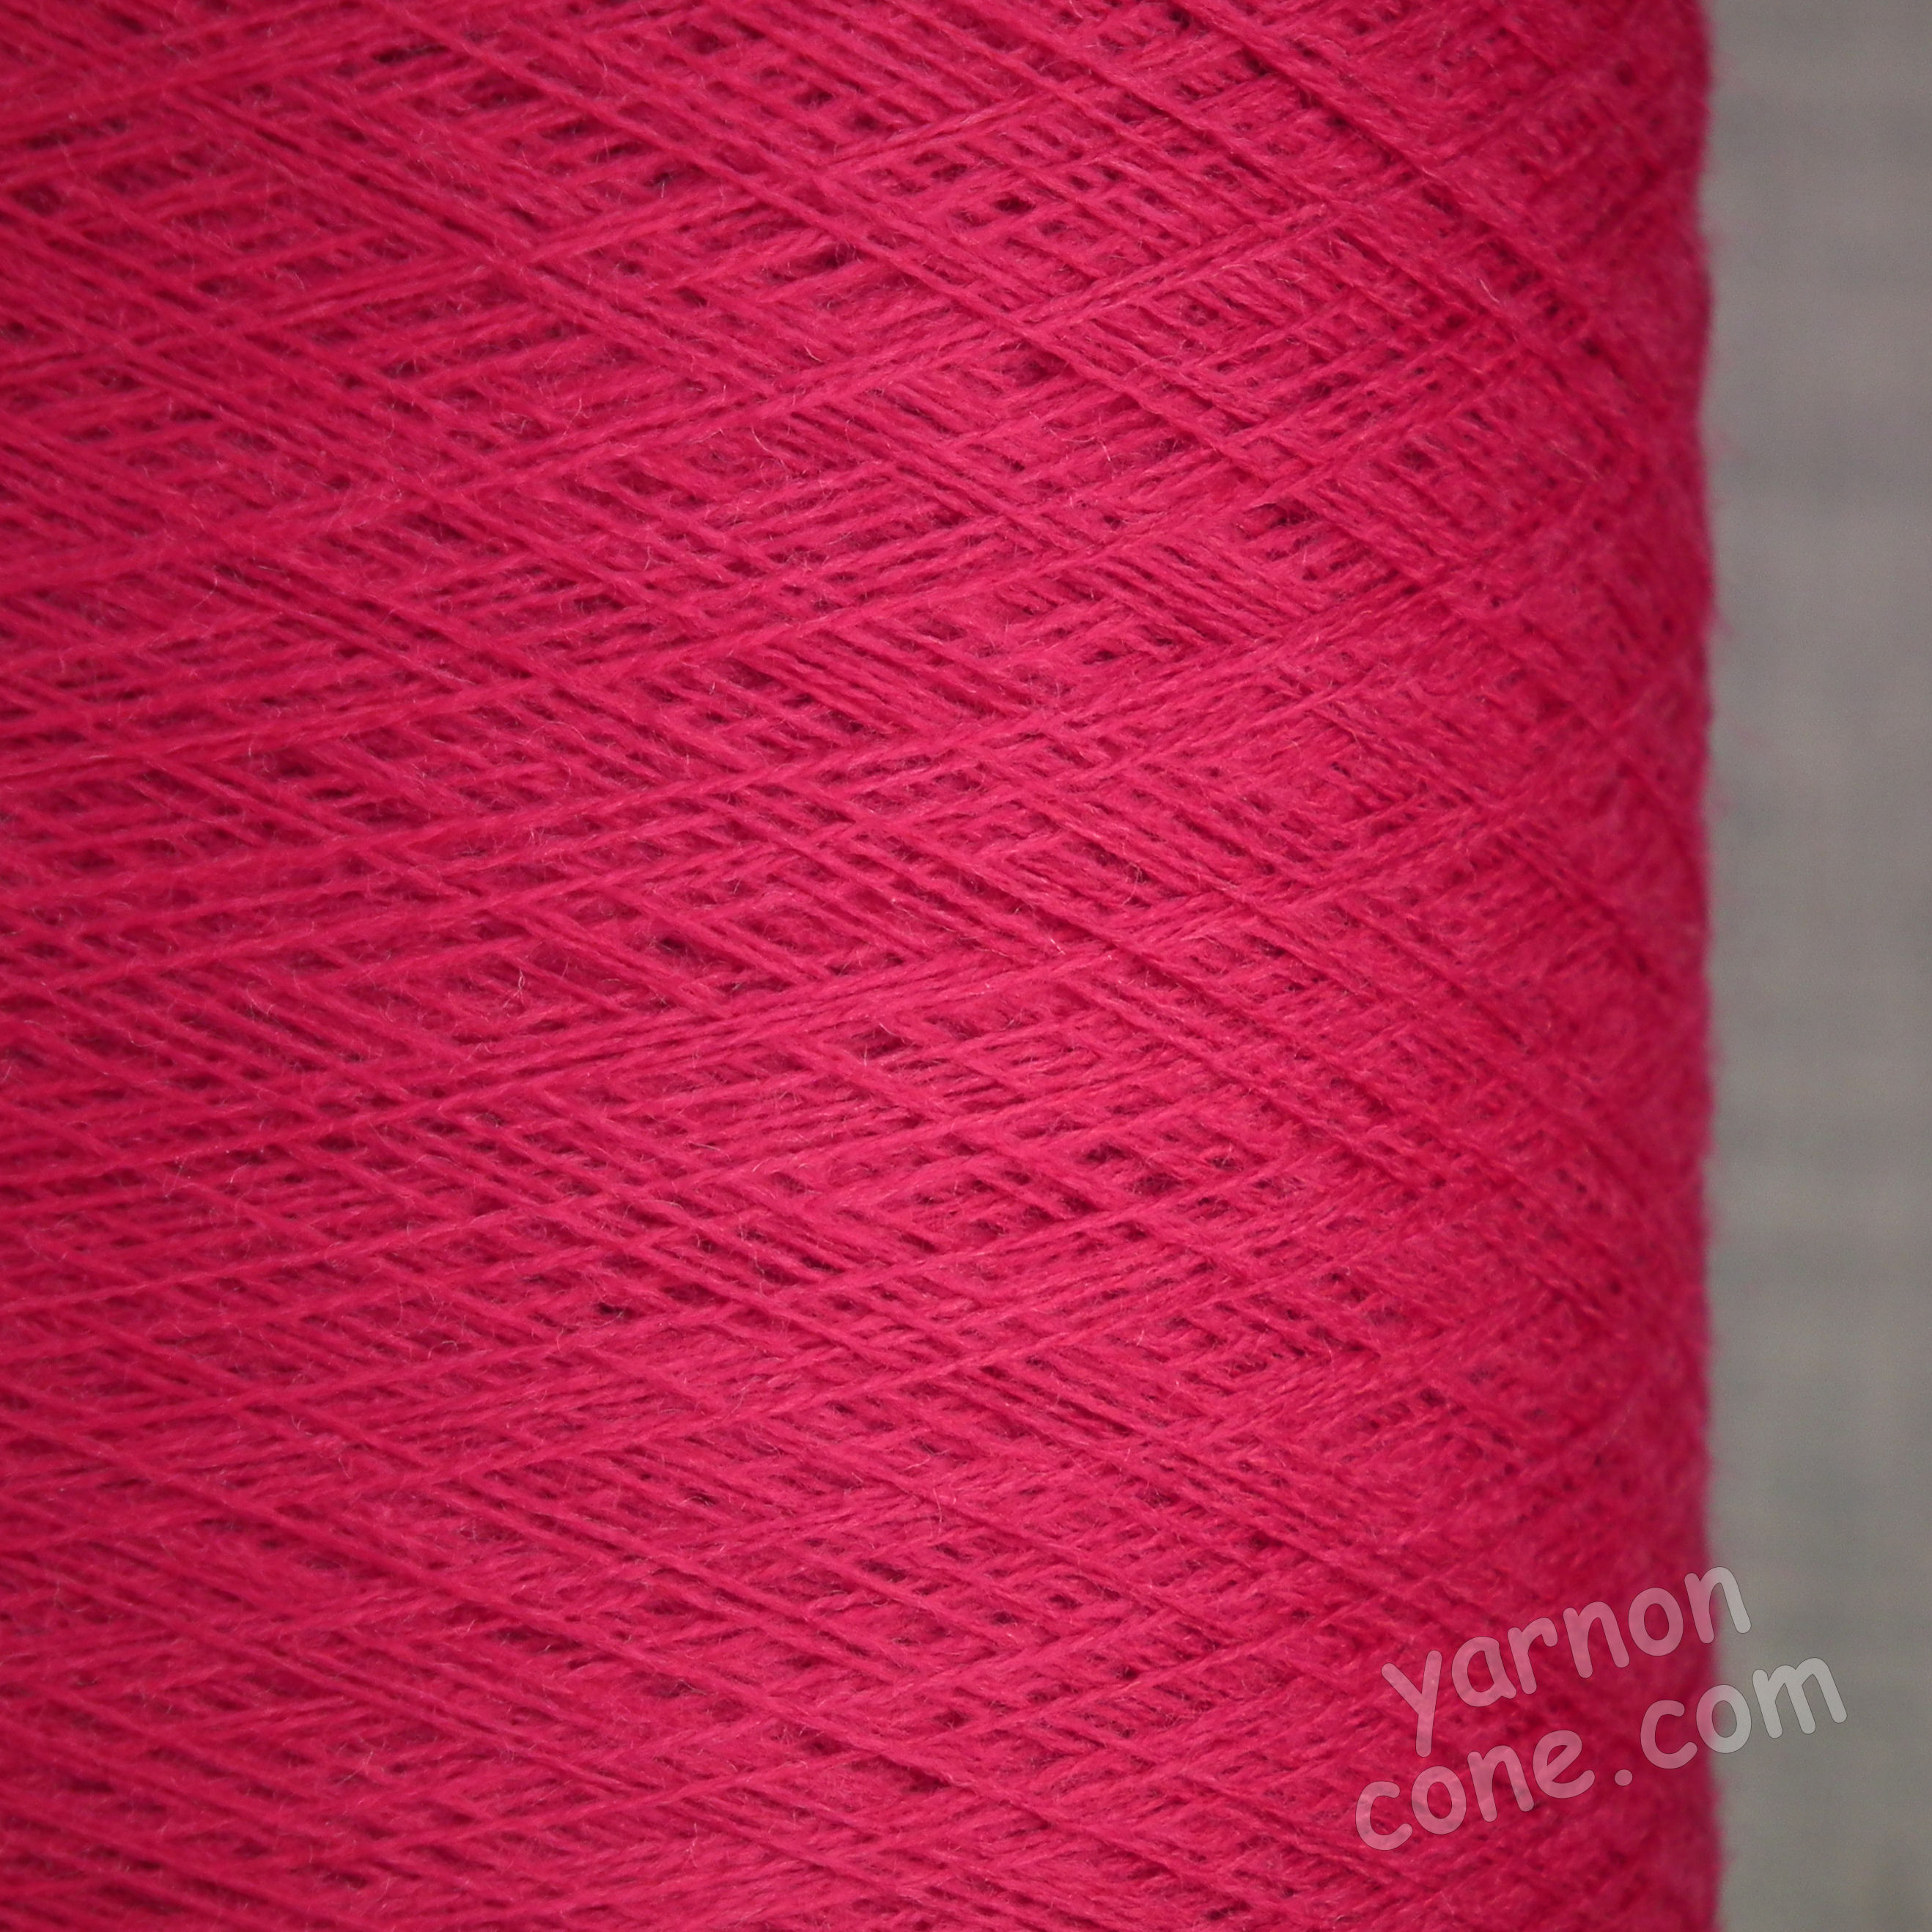 2/60NM extra fine merino wool knitting yarn on cone cobweb weight cerise pink